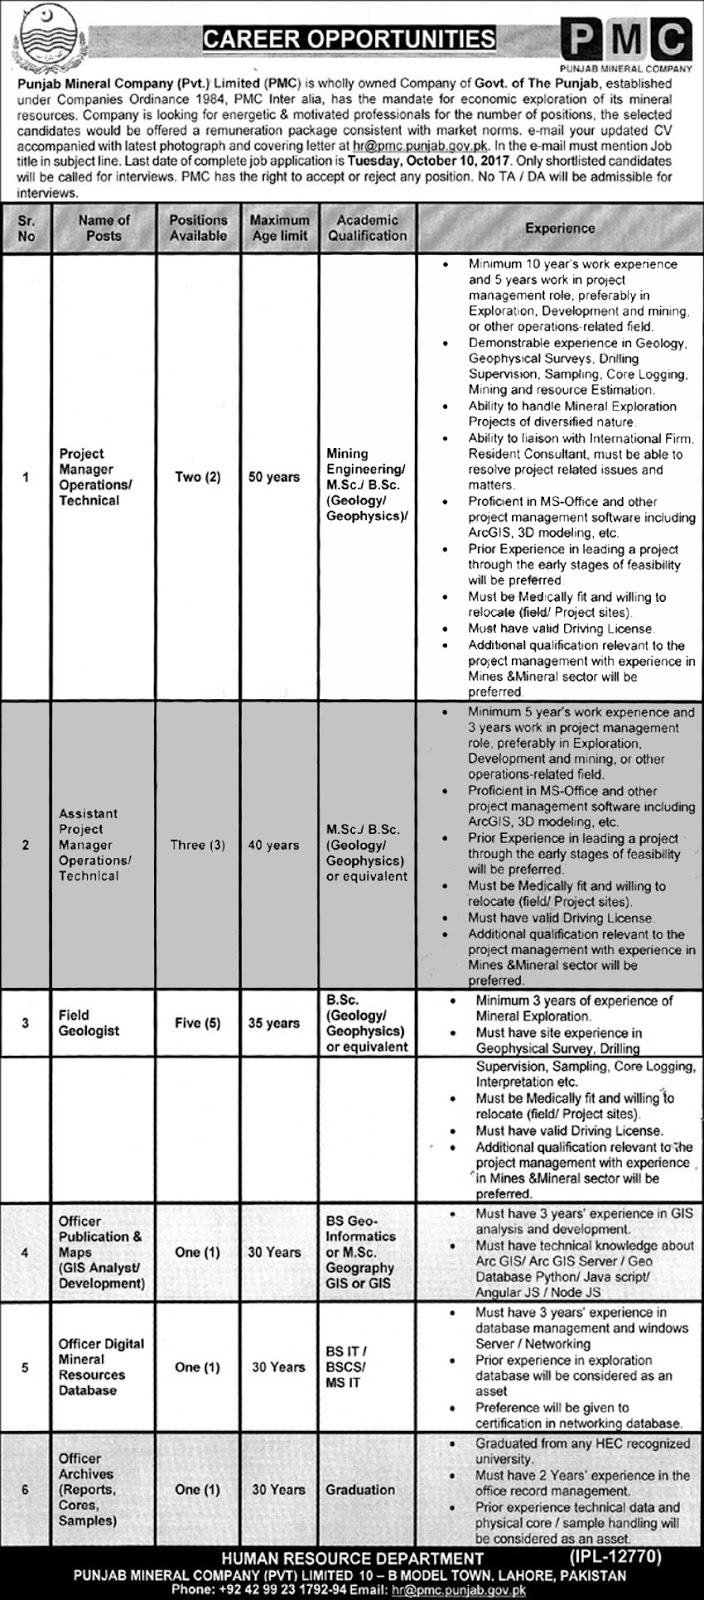 jobs in Punjab Mineral Company Pvt PMC Lahore